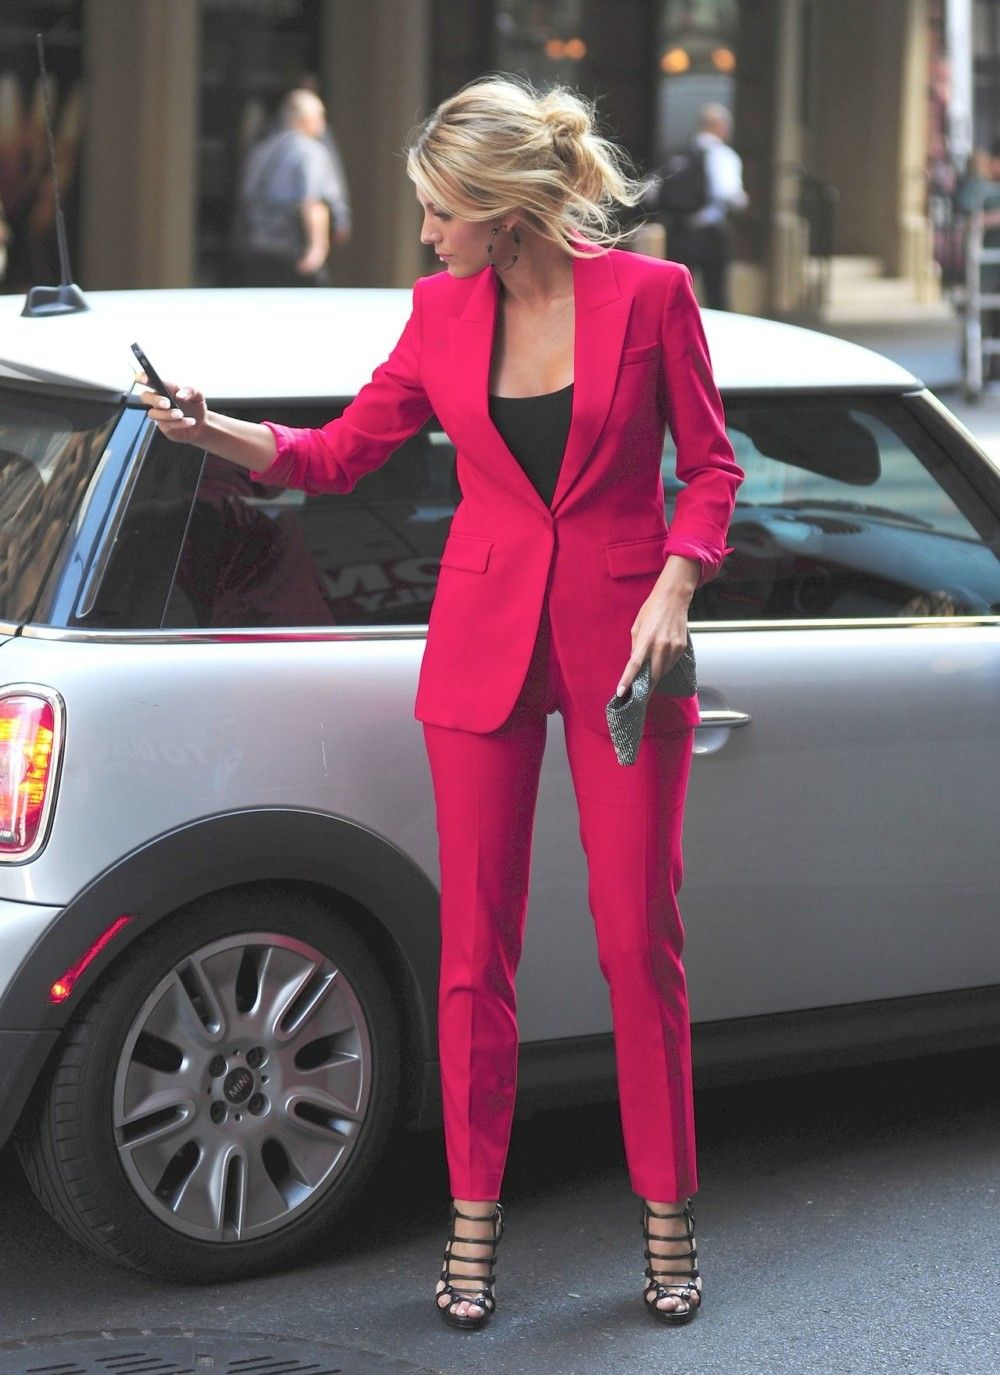 Photo of Style Trend: Pink Monochrome Suits | Sparkles and Shoes